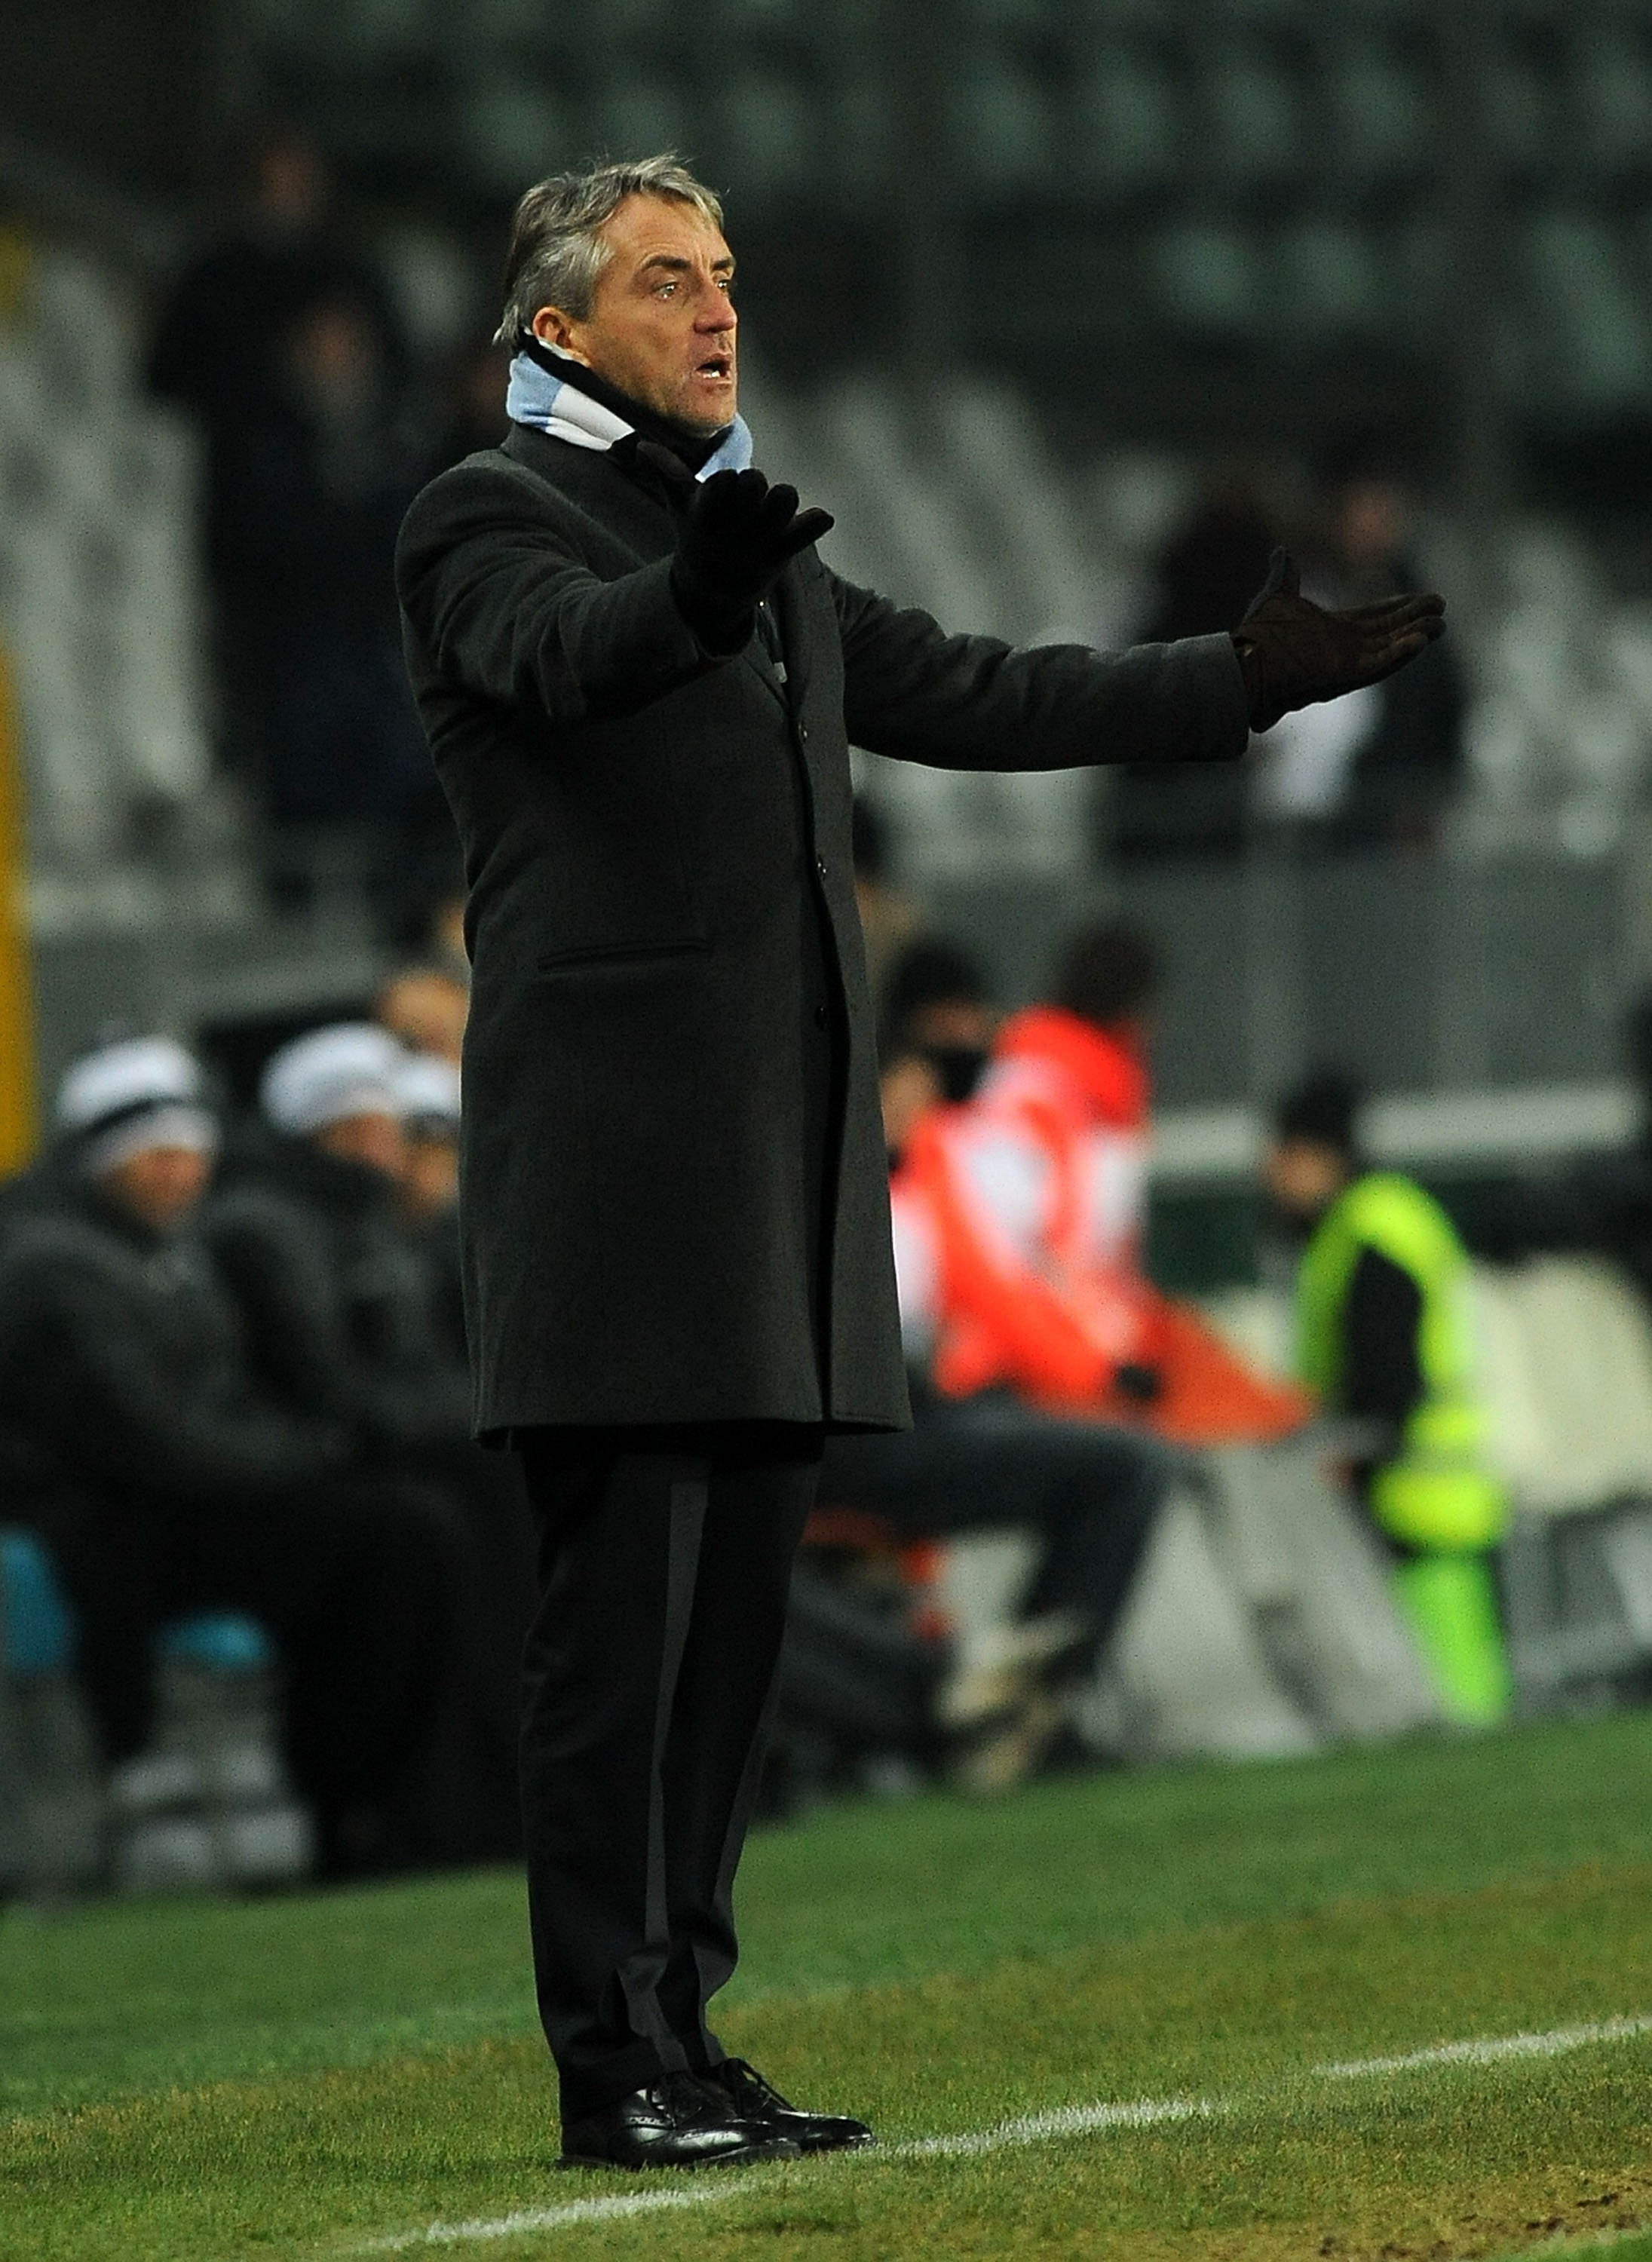 TURIN, ITALY - DECEMBER 16: Head coach Roberto Mancini of Manchester City reacts during the UEFA Europa League group A match between Juventus FC and Manchester City at Stadio Olimpico di Torino on December 16, 2010 in Turin, Italy. (Photo by Massimo Cebre